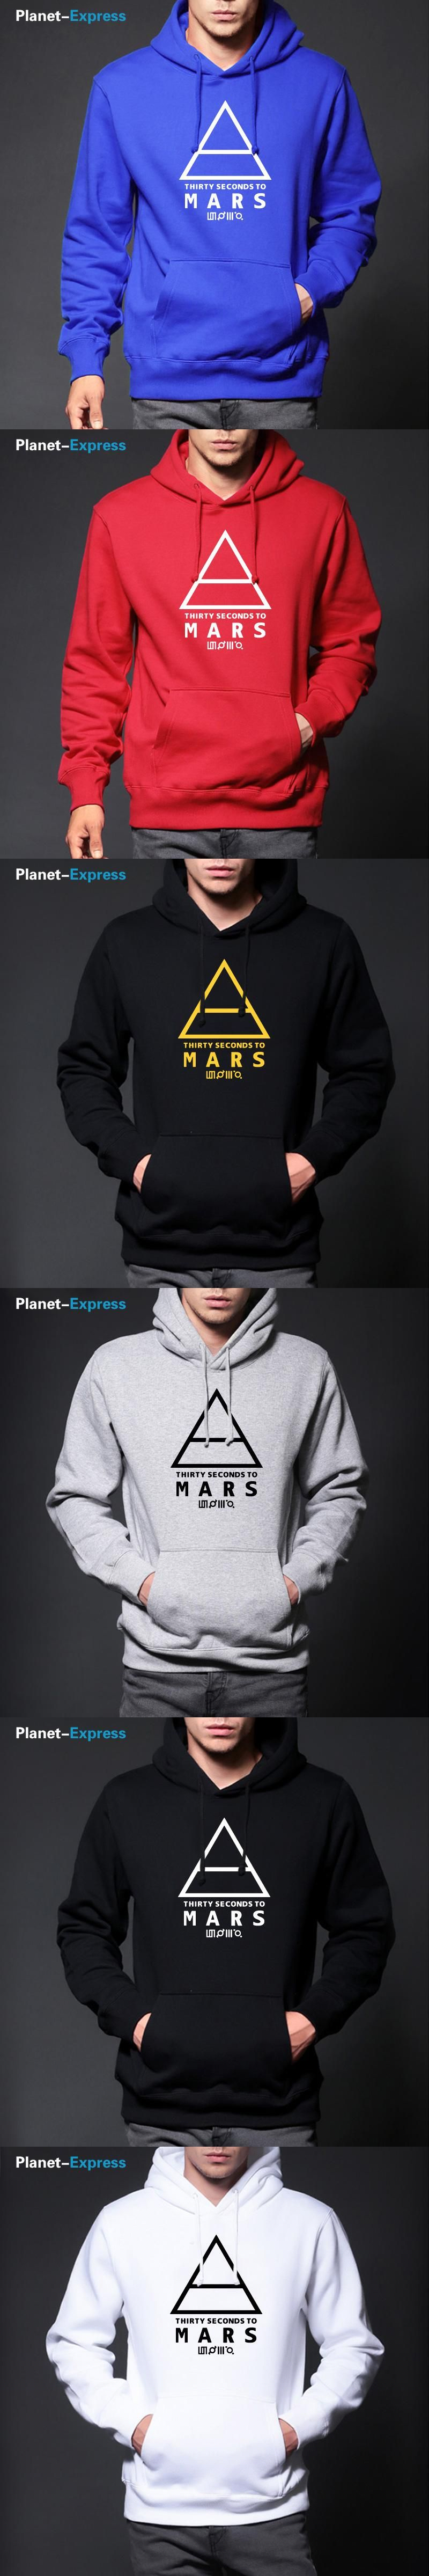 30 Seconds To Mars Map Of The World.Autumn New 30 Seconds To Mars Hoodies Men On His Face Is A Map Of